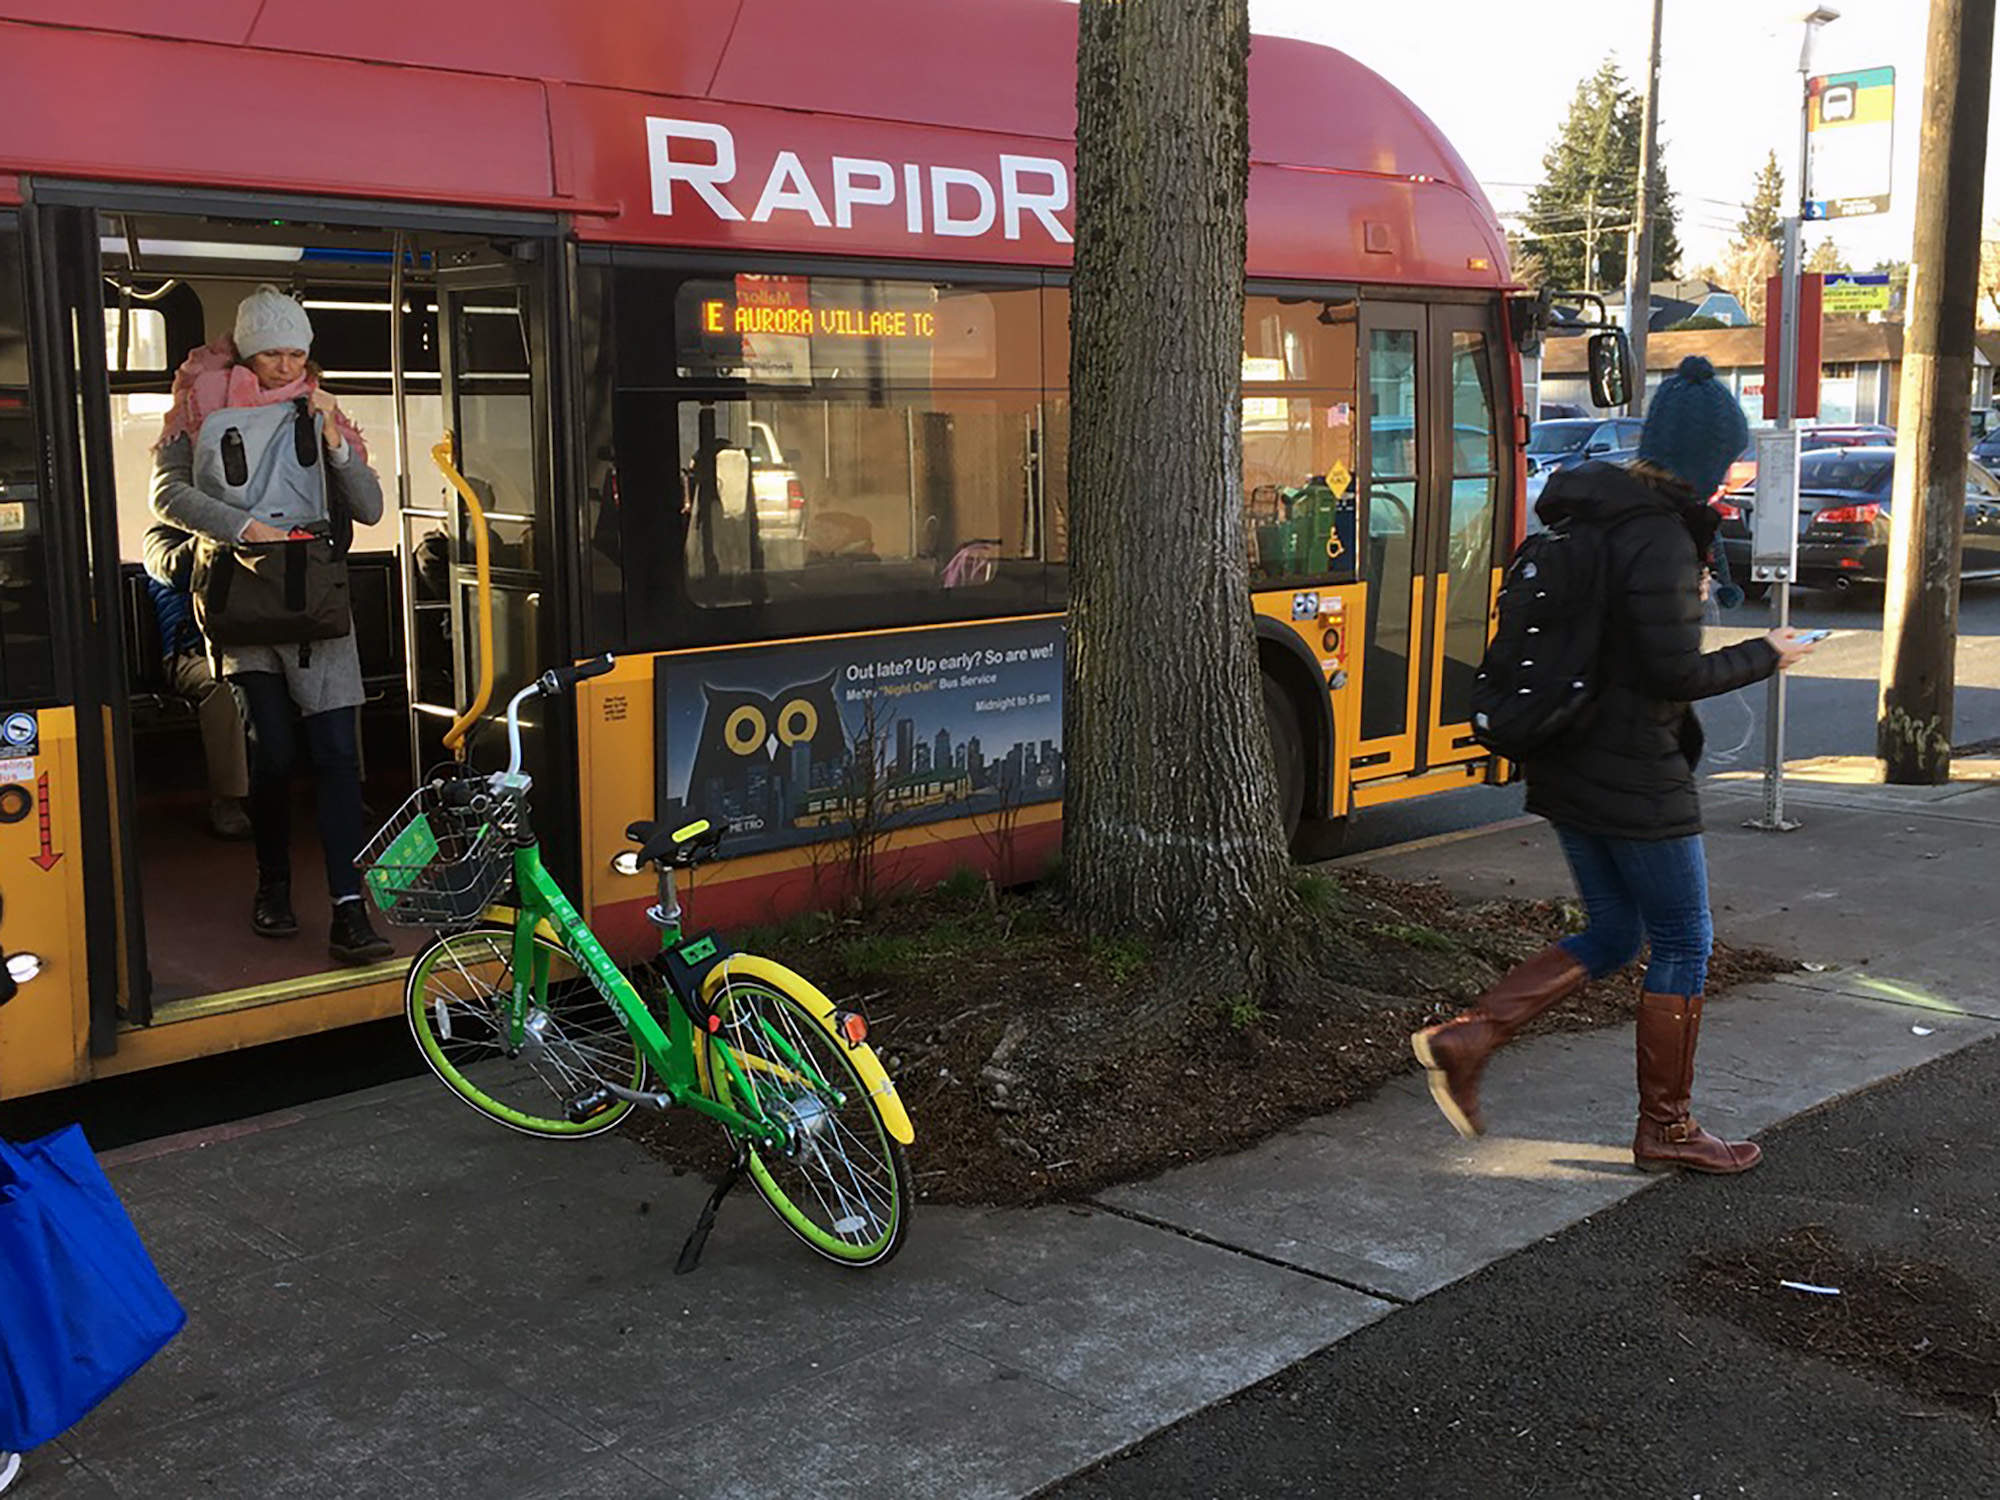 A rental bike directly interferes with a transit rider as she turns into a pedestrian (Photo by Douglas MacDonald)